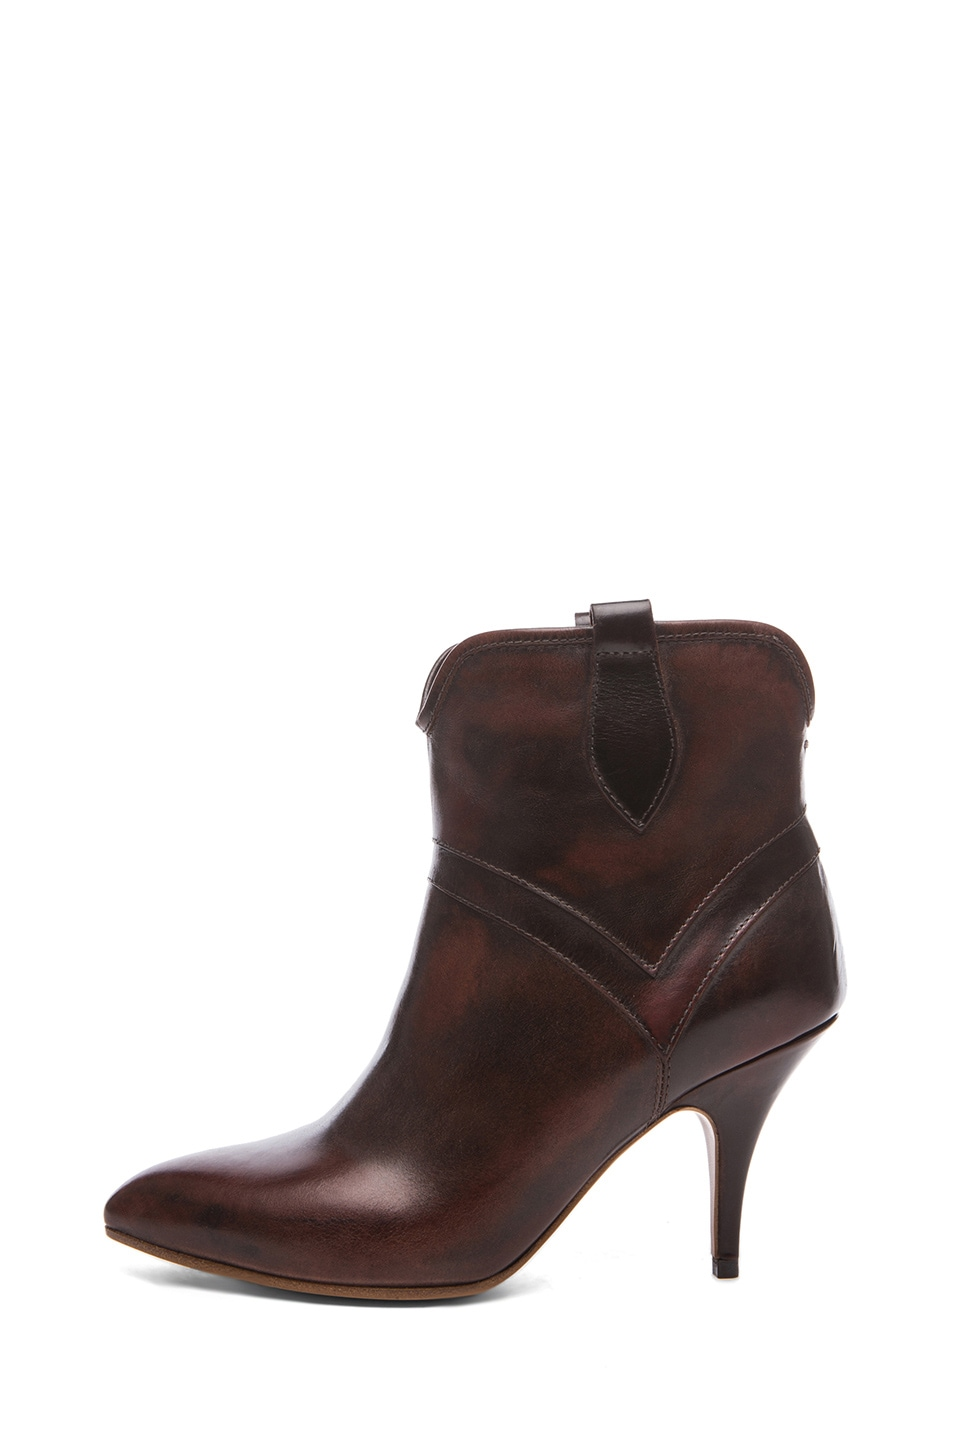 Image 1 of Maison Margiela Leather Texan Brushed Effect Bootie in Brandy